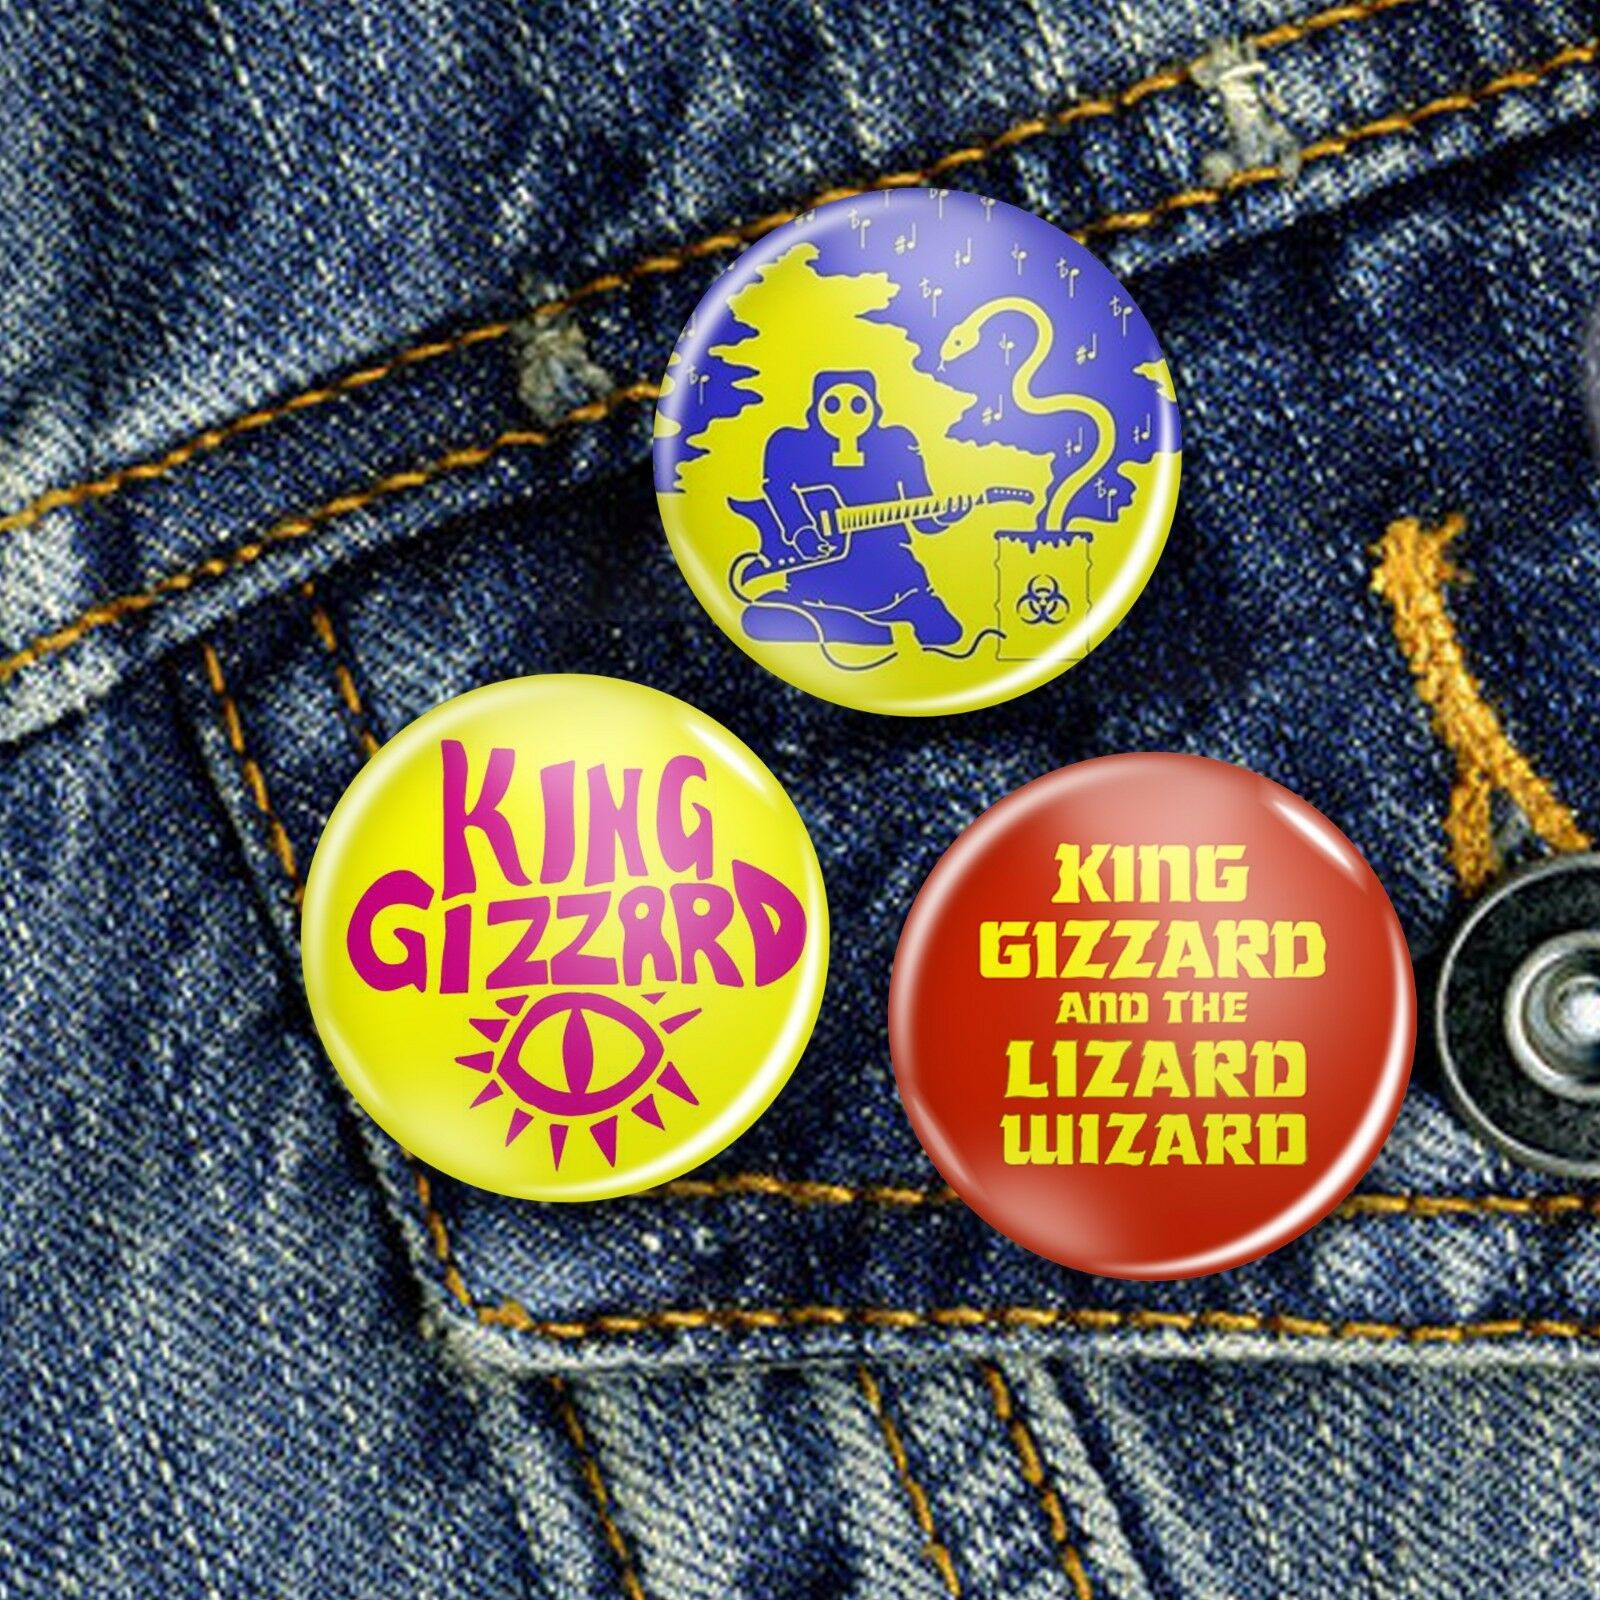 King Gizzard Psychedelic Acid Pin Button Badge Set 3 x 25mm Badges or Individual